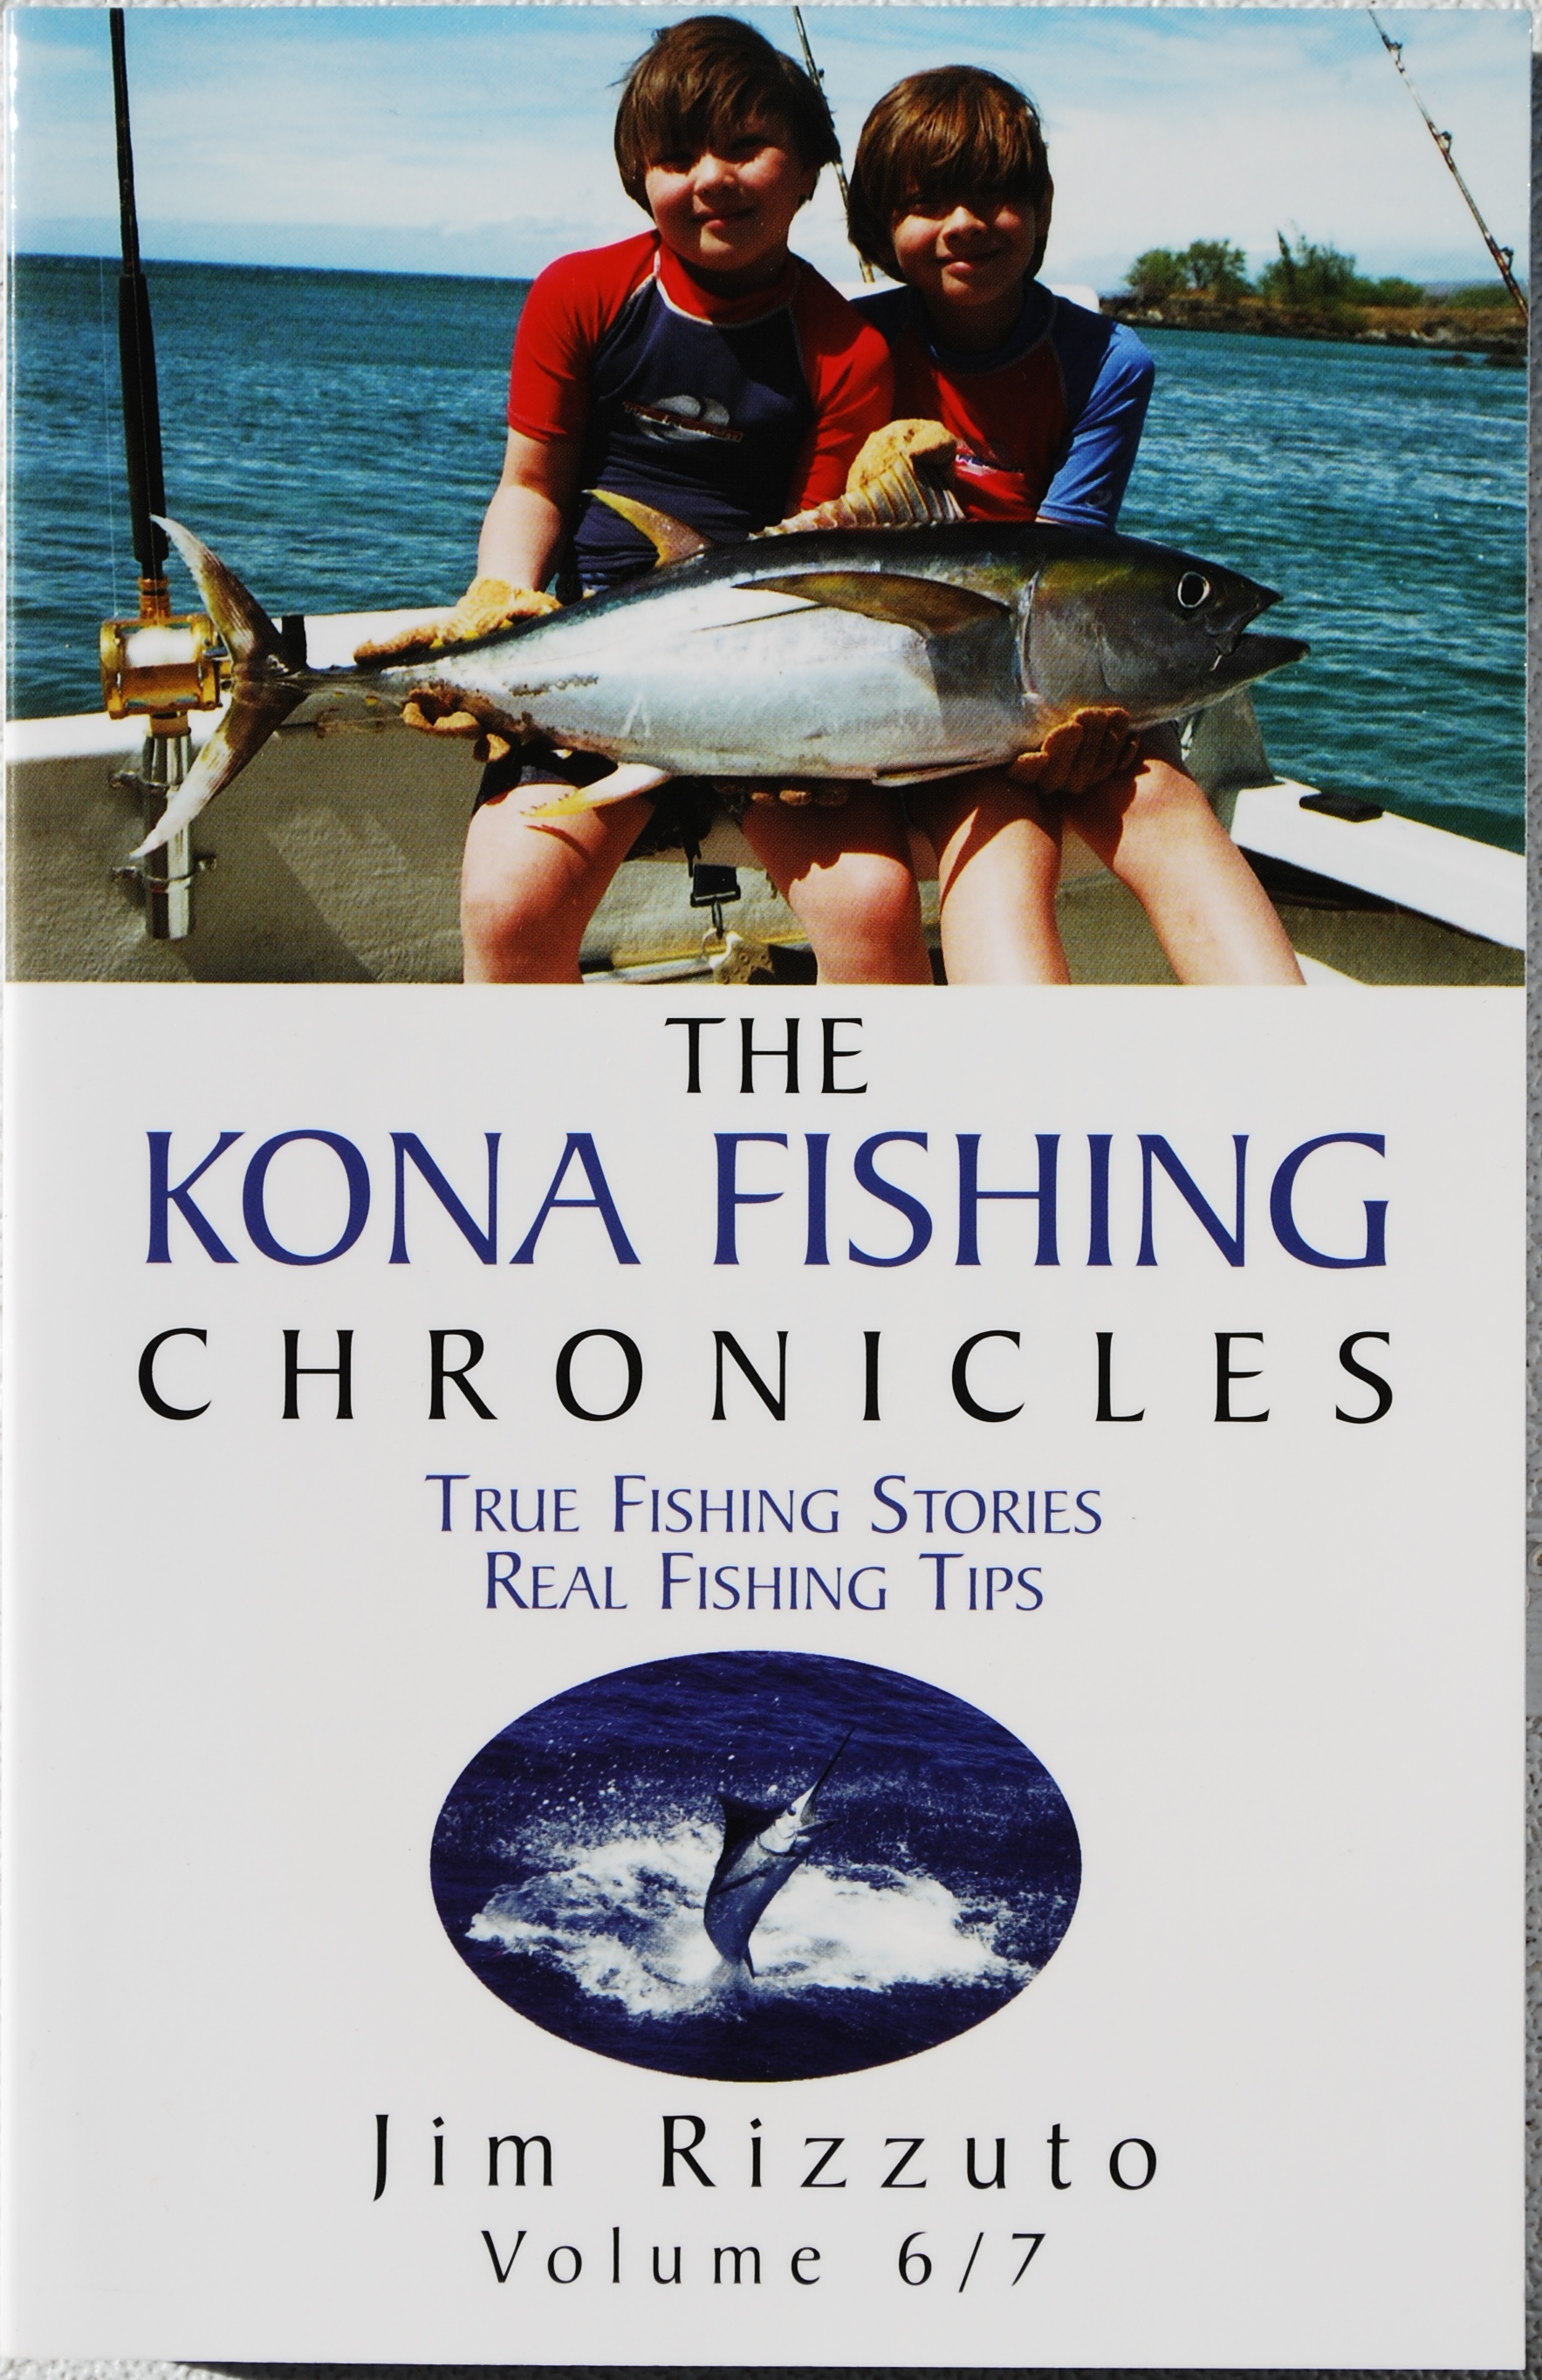 Kona Marlin Fishing in November 2006